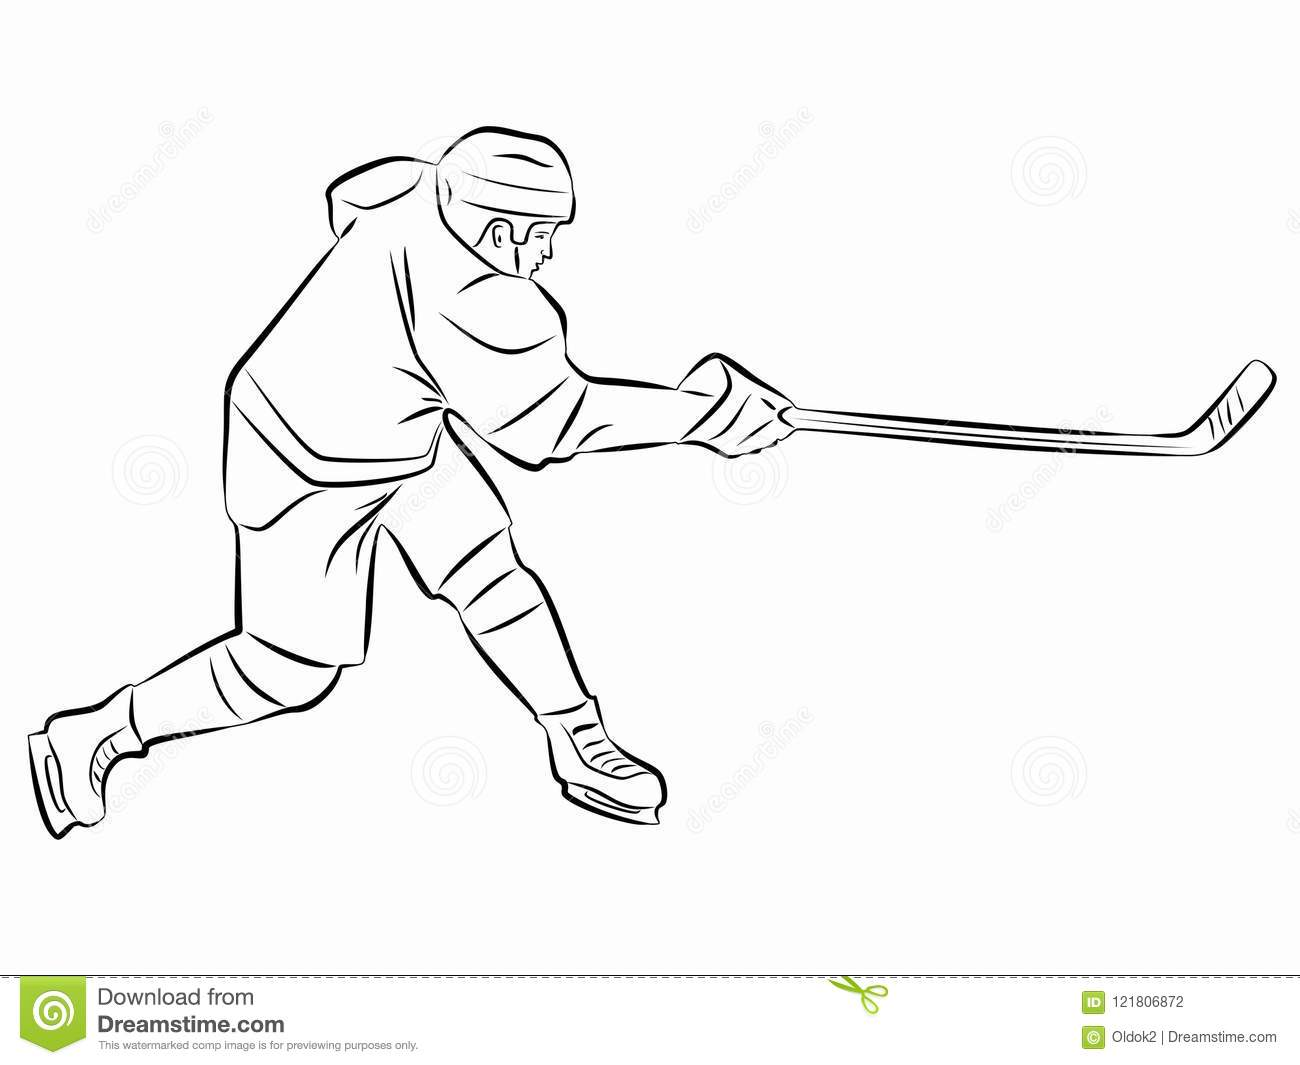 ice hockey player drawing how to draw a hockey player step by step drawing player ice drawing hockey